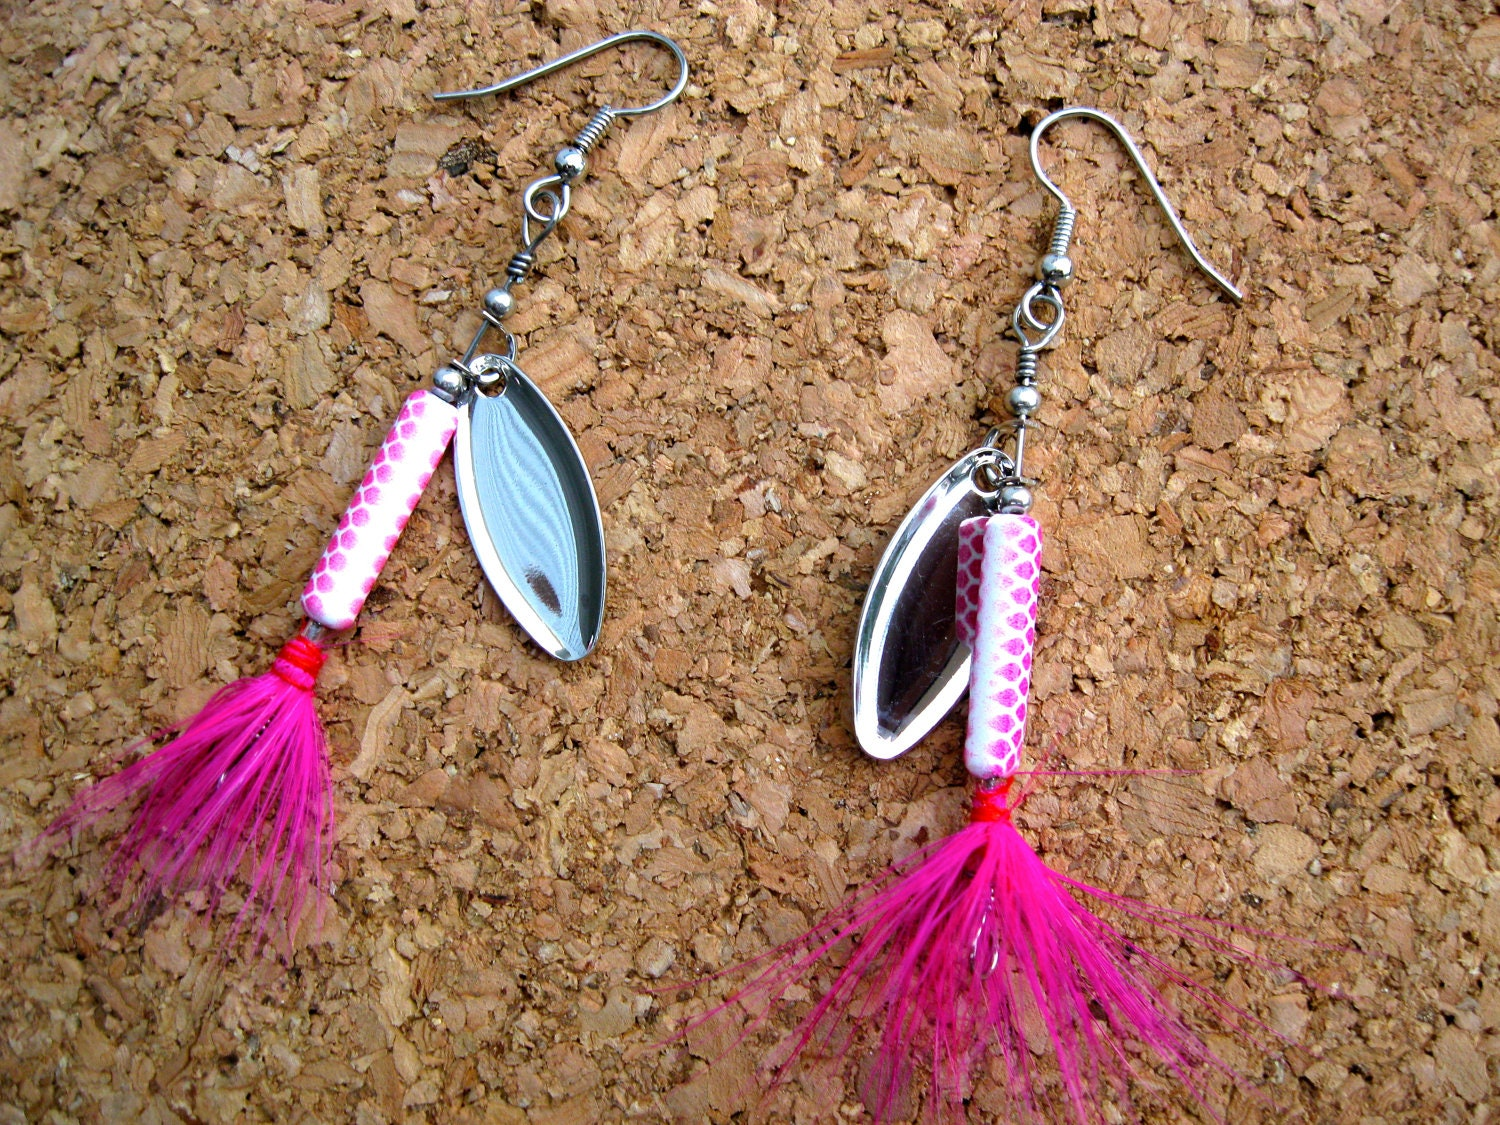 fishing lure earrings